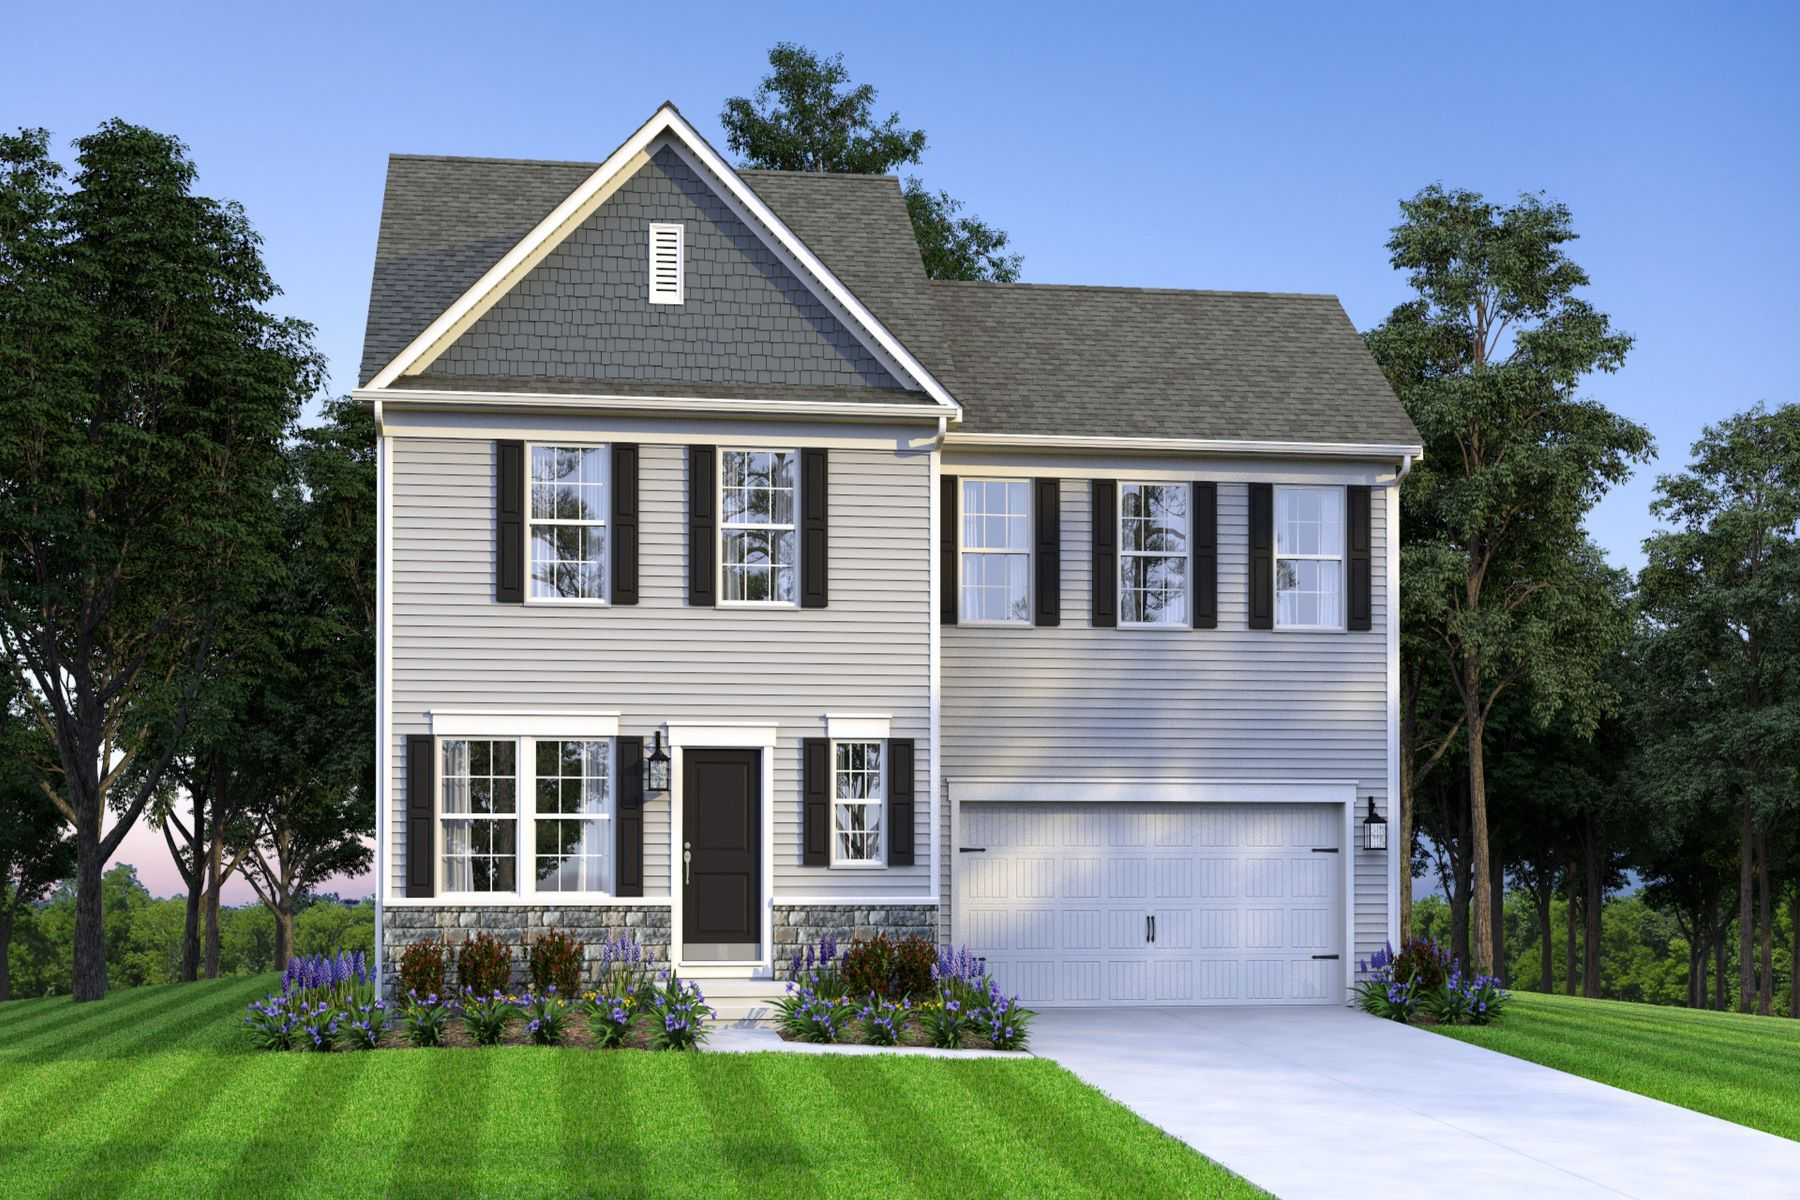 Single Family Homes のために 売買 アット The Pearl New Construction in Delta 2102-B Bryansville Road, Delta, ペンシルベニア 17314 アメリカ